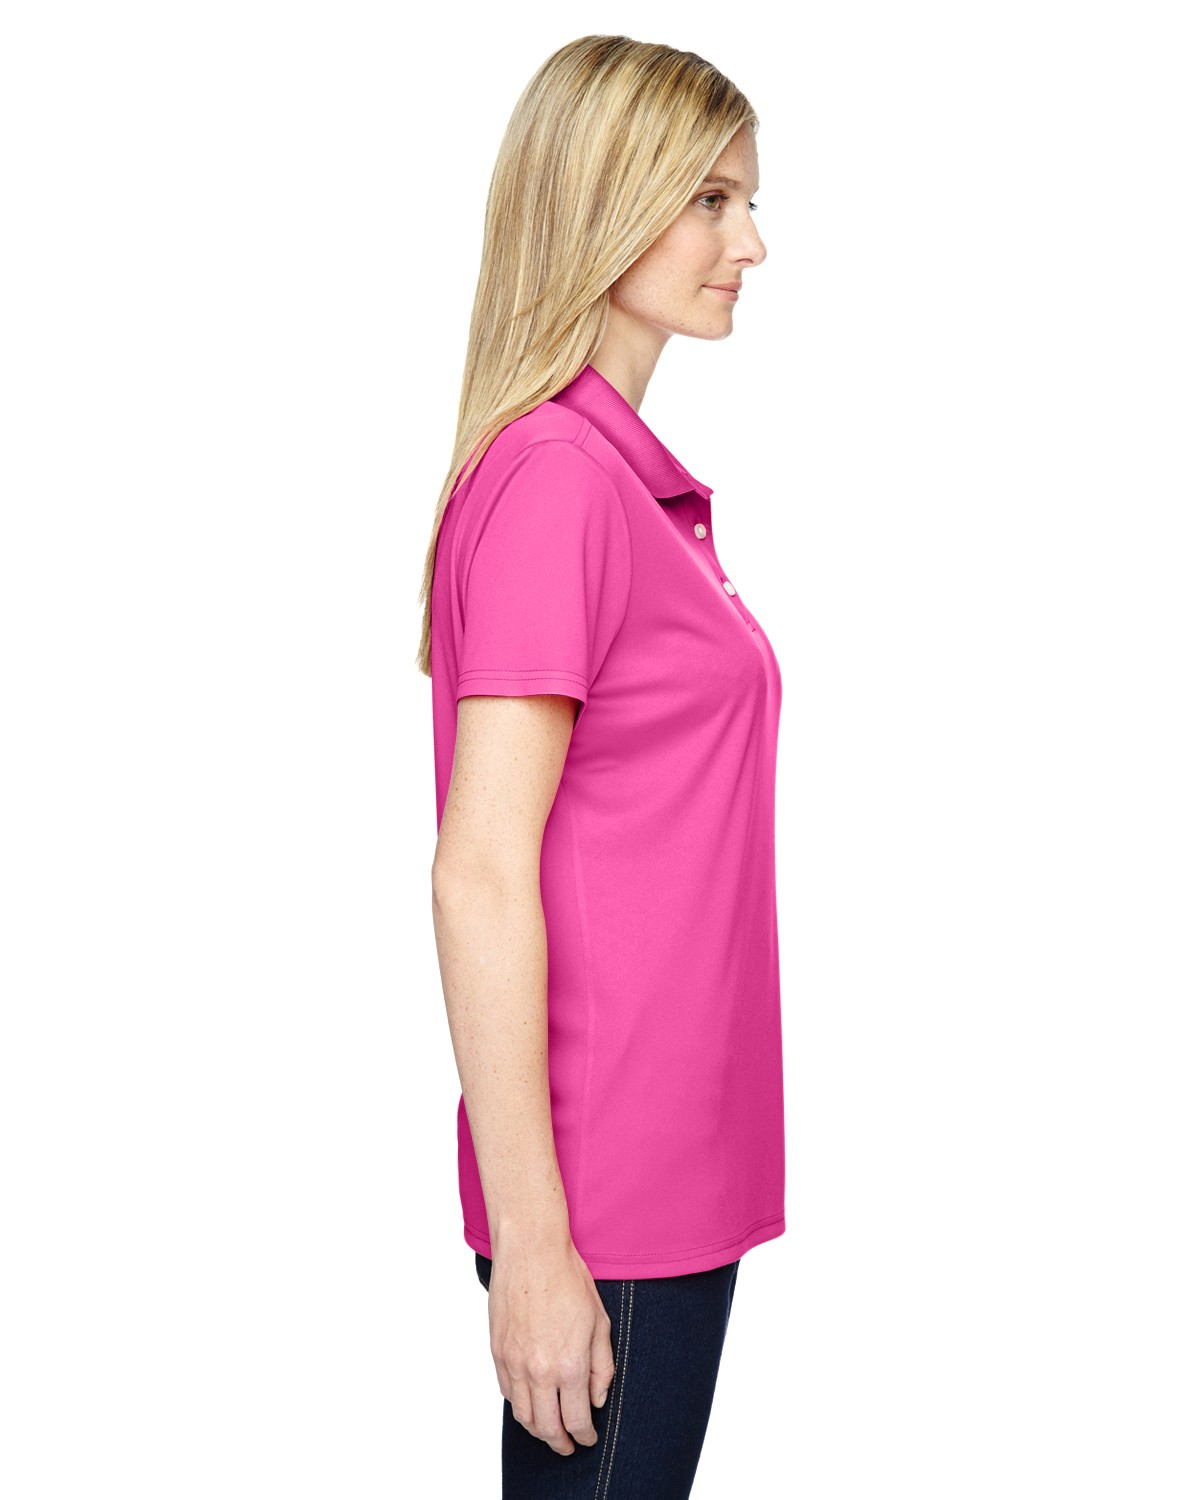 480W Hanes WOW PINK